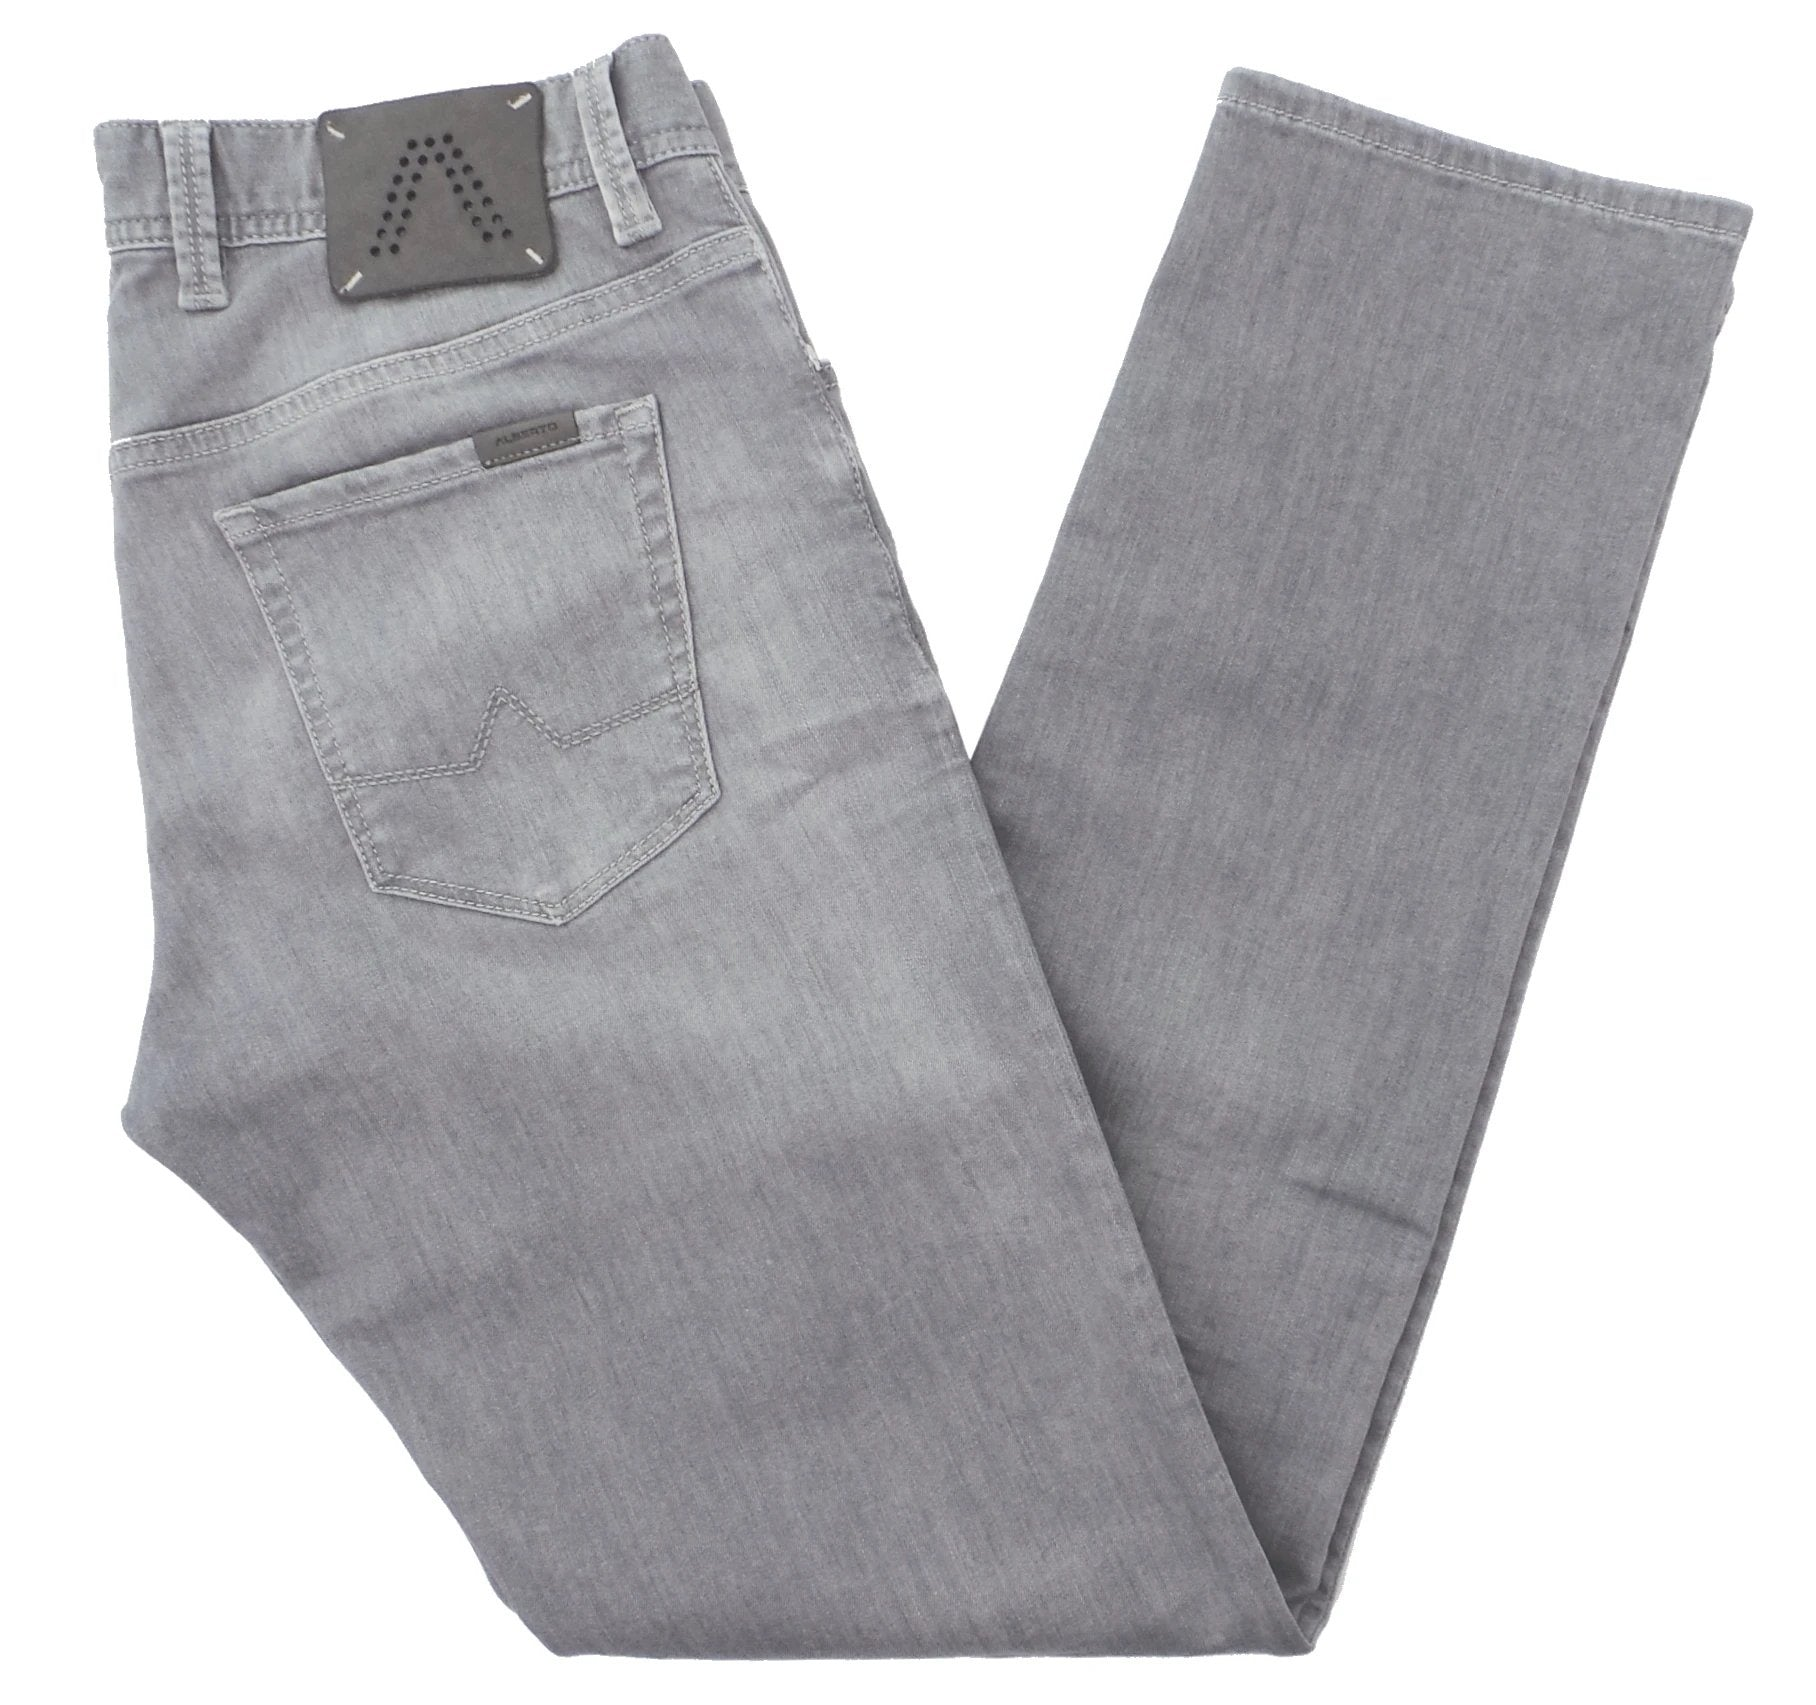 Alberto Pipe 1987 Regular Fit Dynamic Superfit Jeans